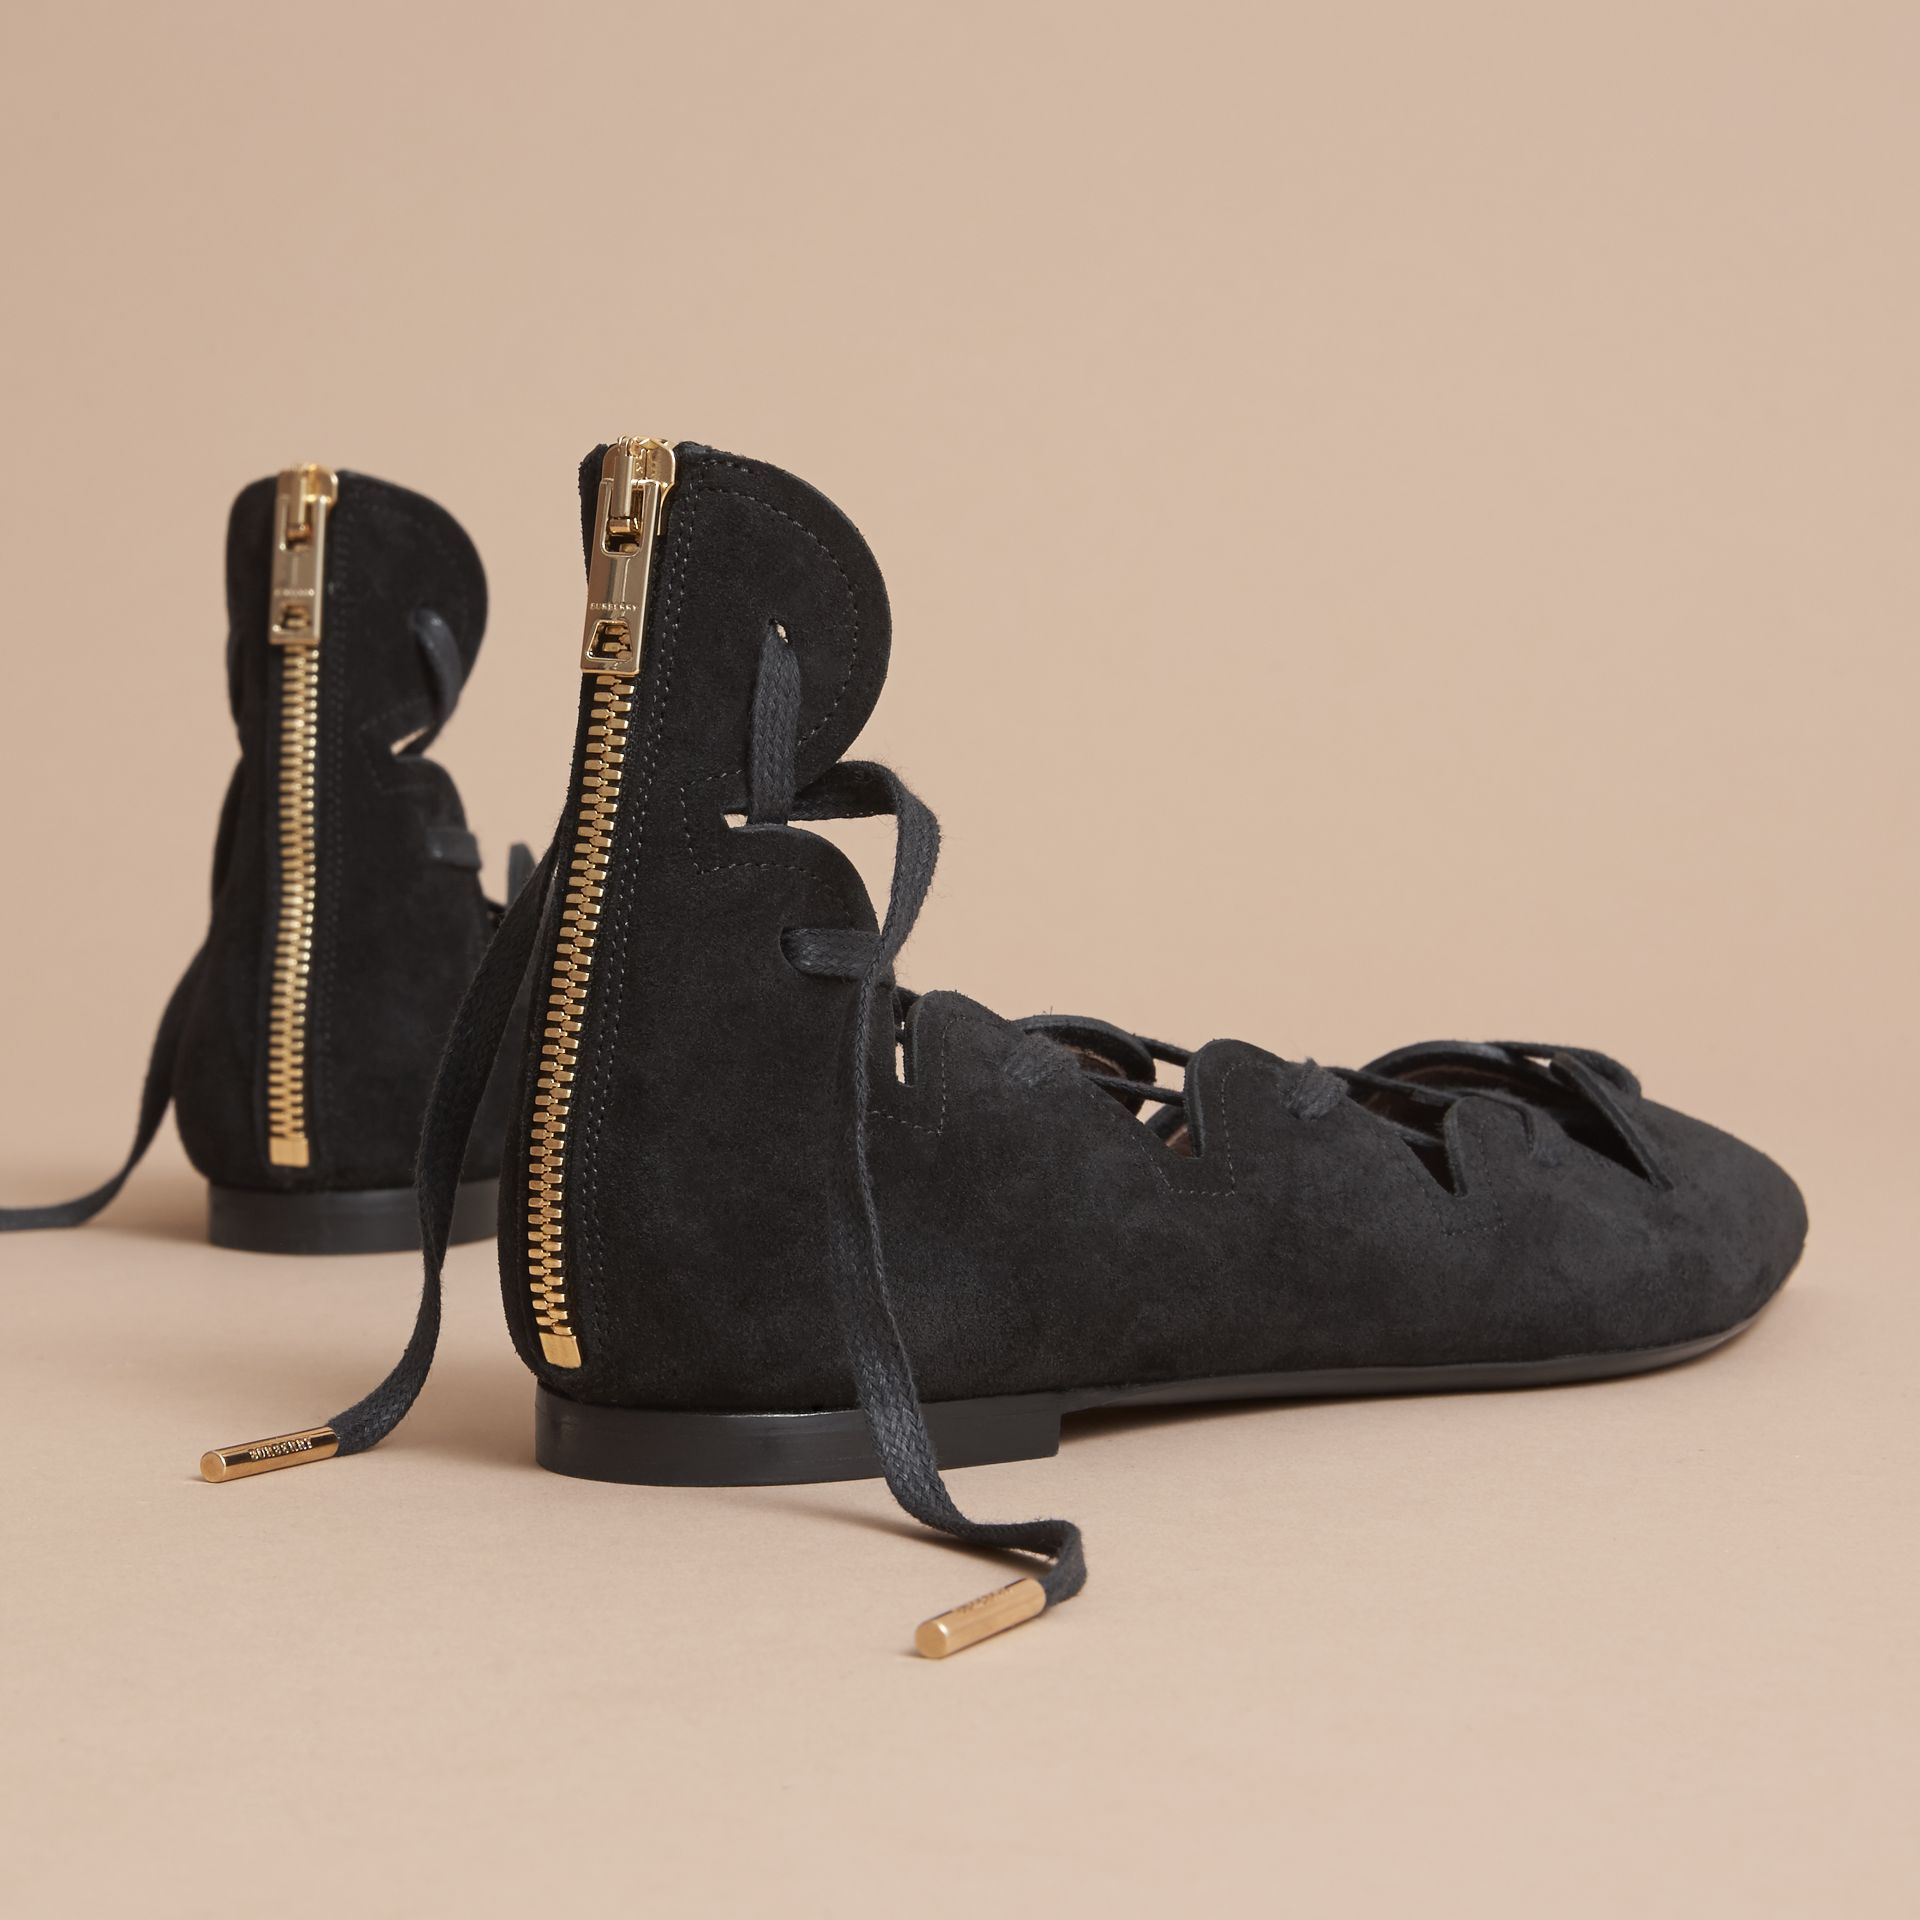 Scalloped Suede Lace-up Ballerinas in Black - Women | Burberry United States - gallery image 4